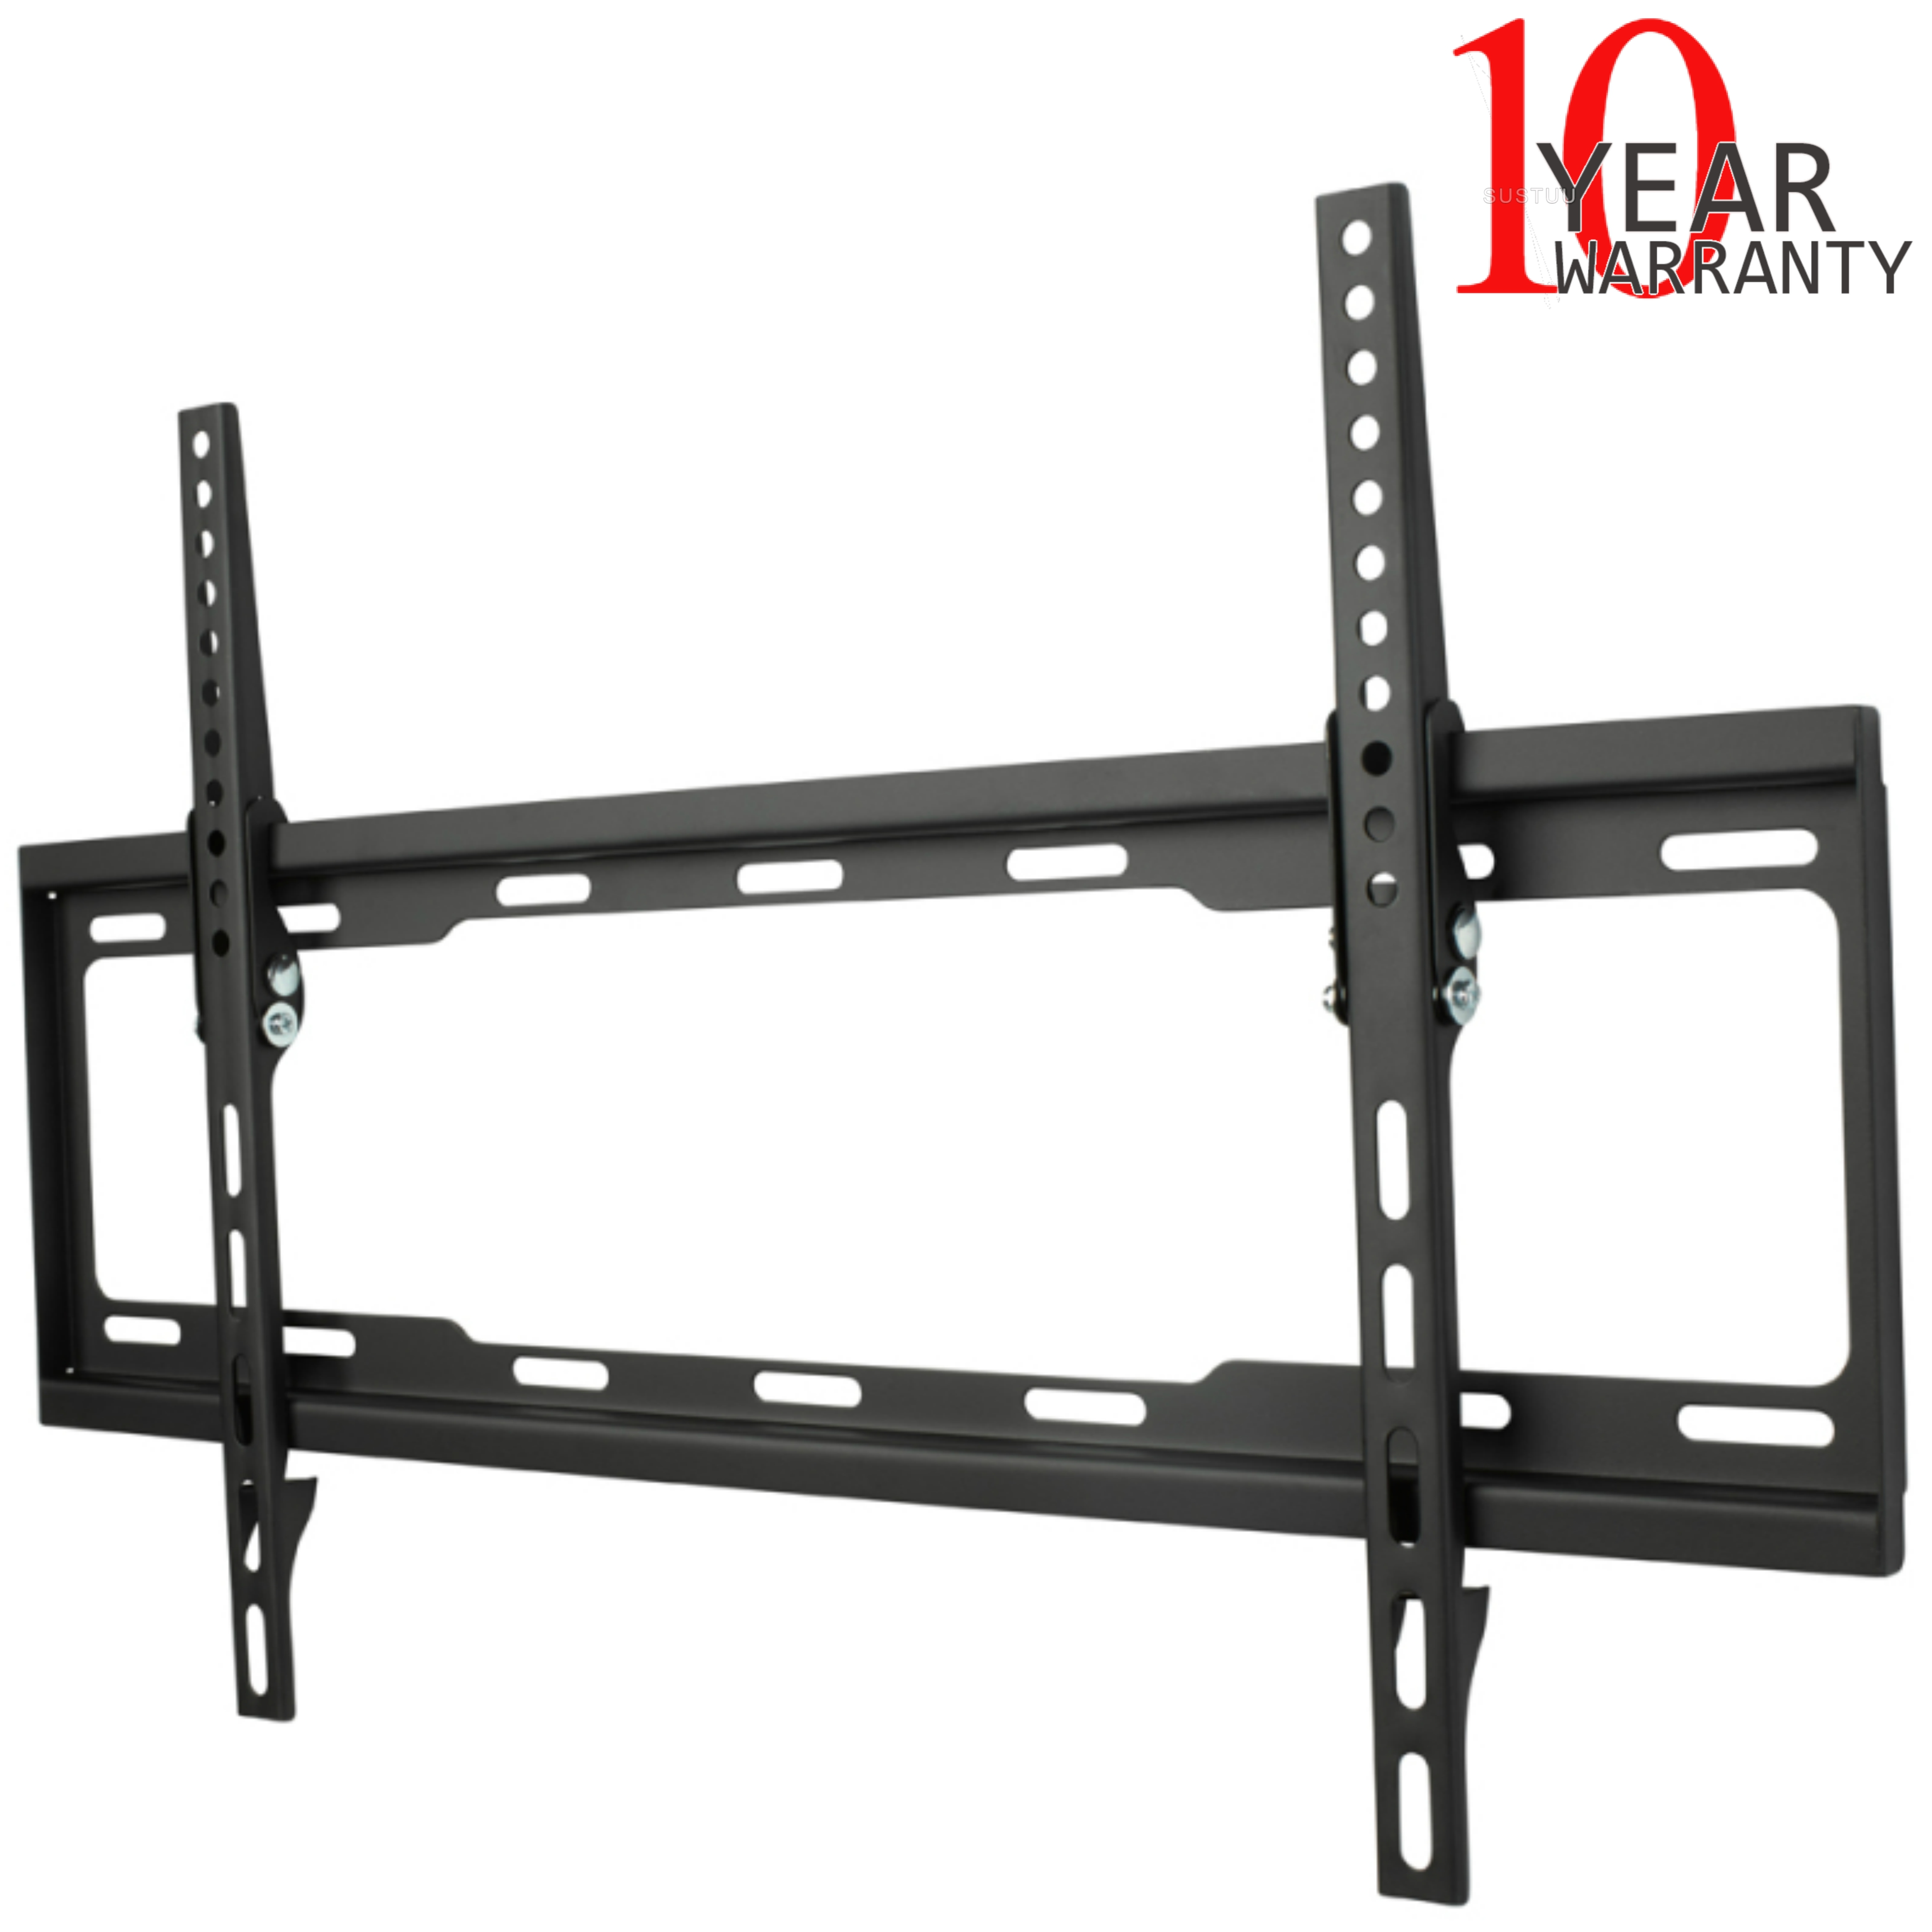 One For All 32-84 inch TV Bracket Stand | Tilt Smart Series | Easy To Install | WM2621